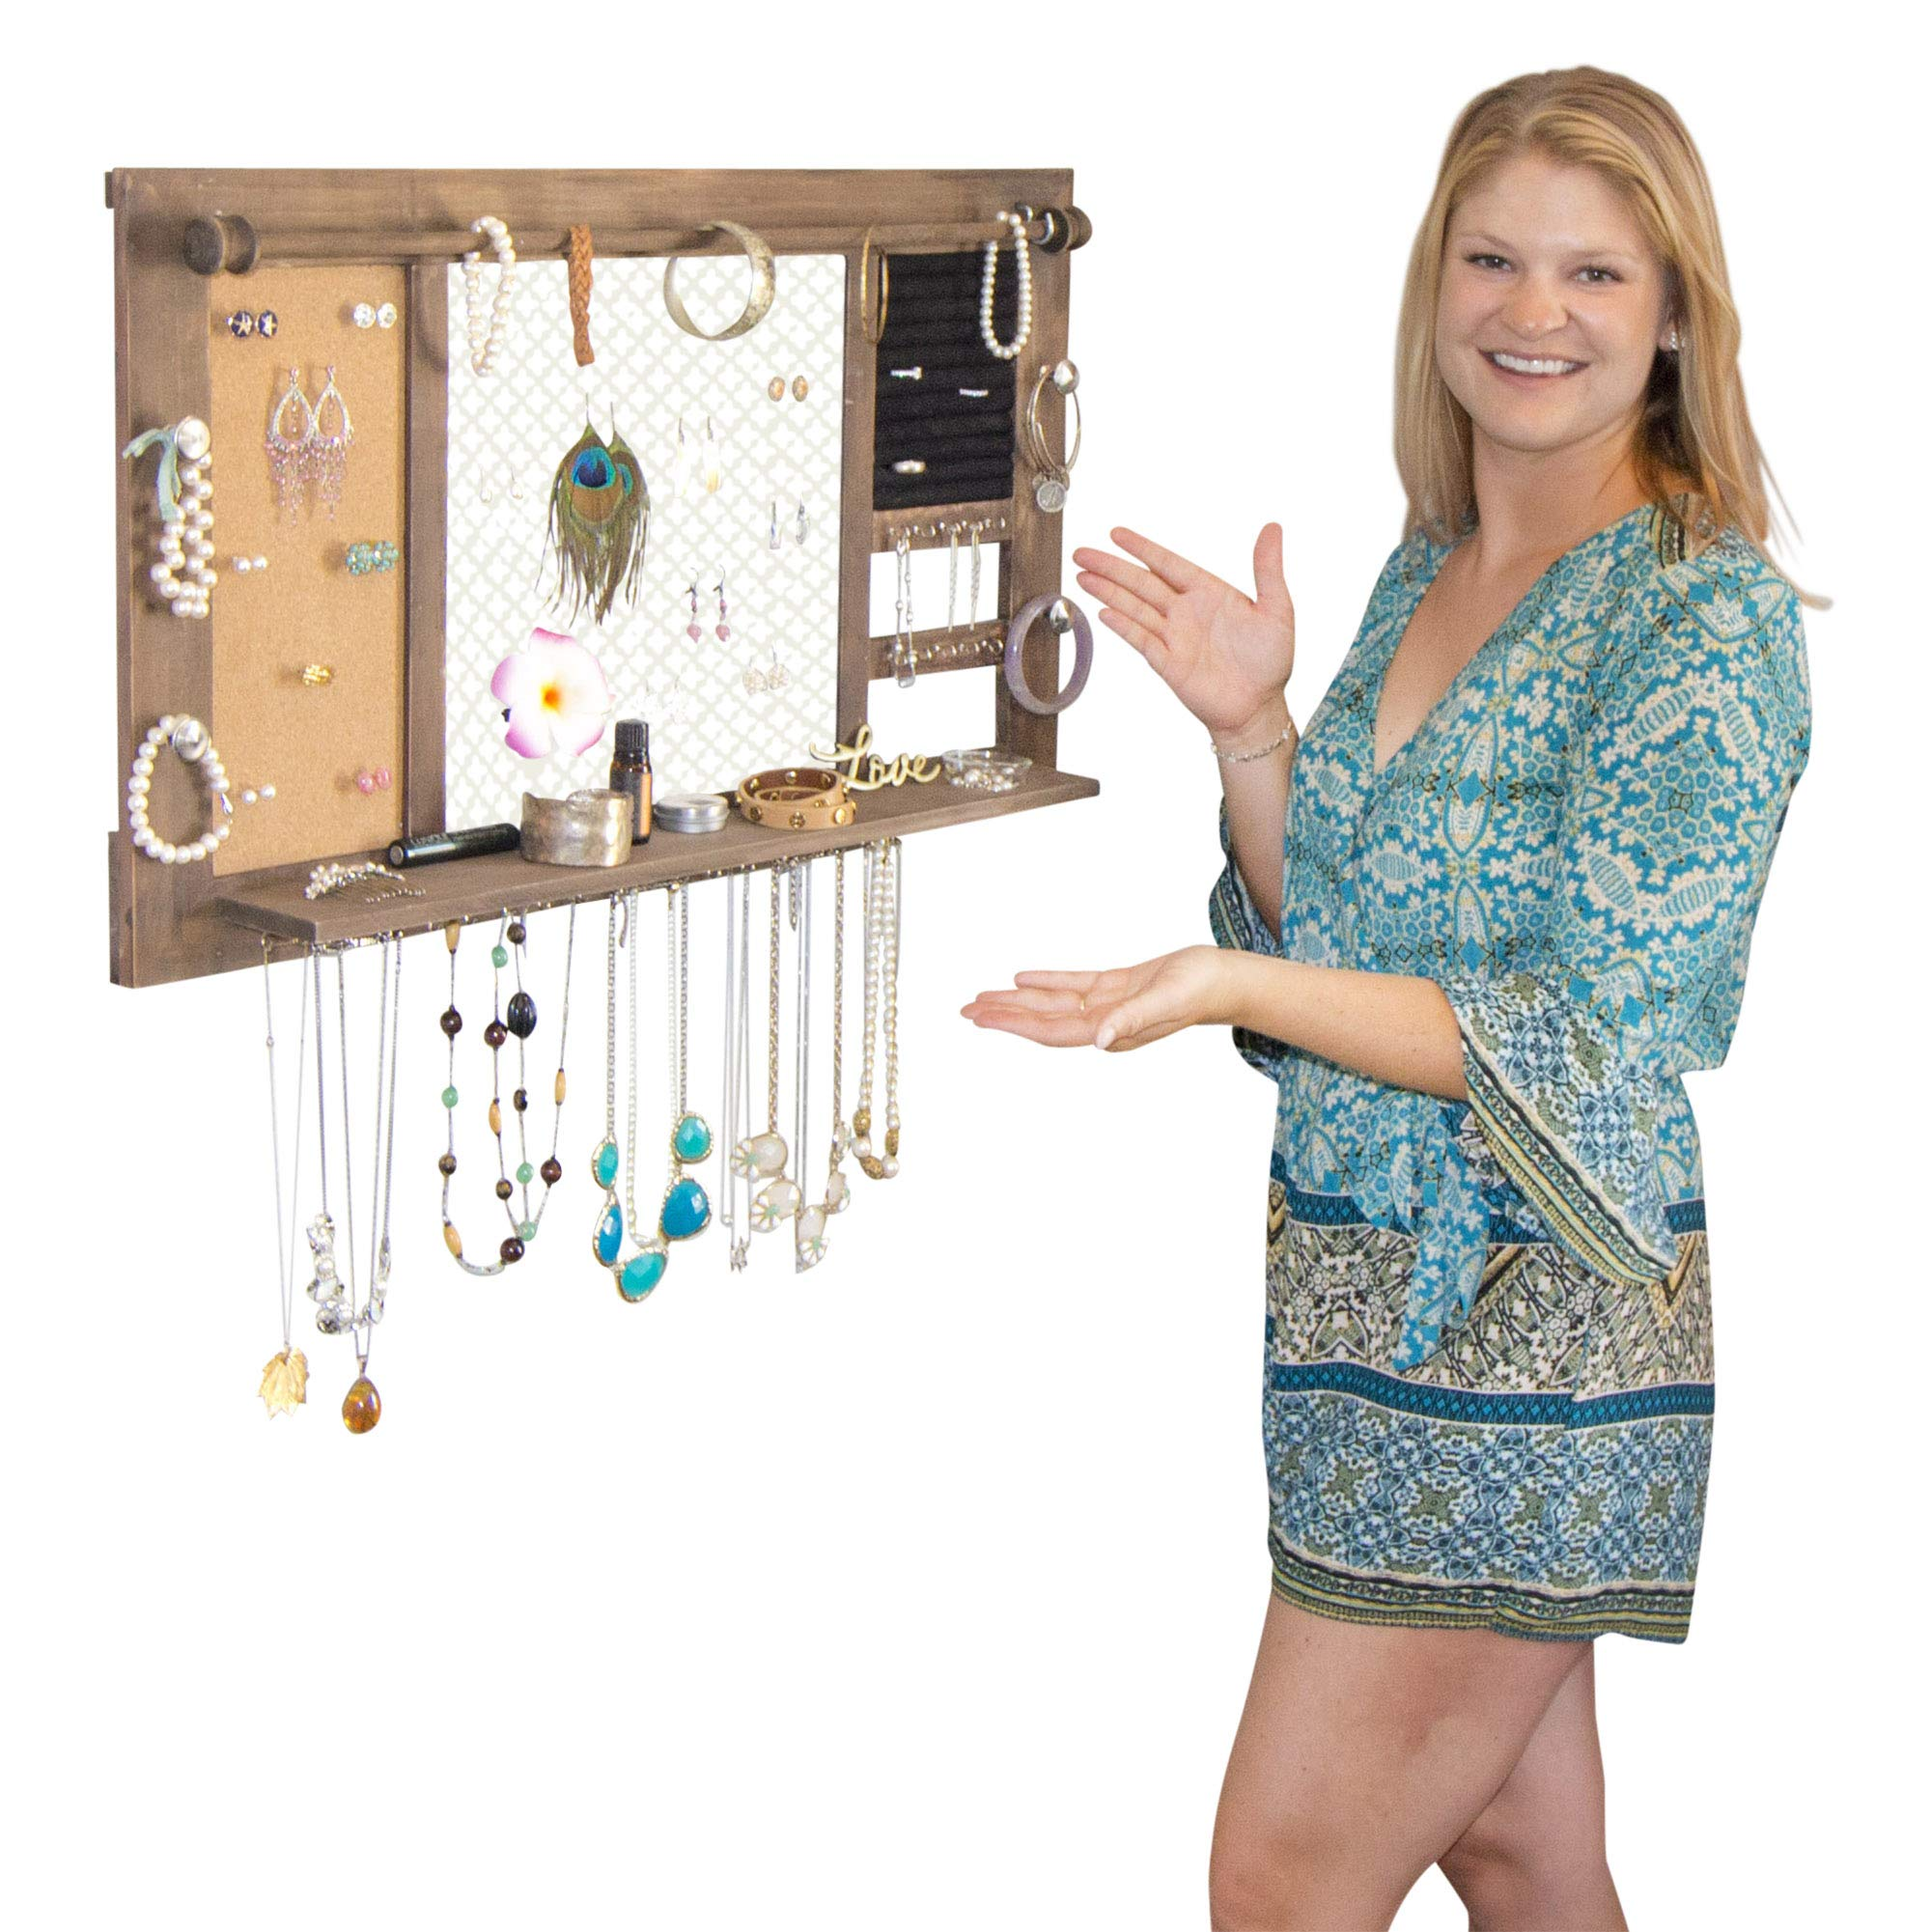 SoCal Buttercup Deluxe Rustic Wood Jewelry Organizer - from Hanging Wall Mounted Wooden Jewelry Display - Organizer for Earrings, Necklaces, Bracelets, Studs, and Accessories by SoCal Buttercup (Image #8)